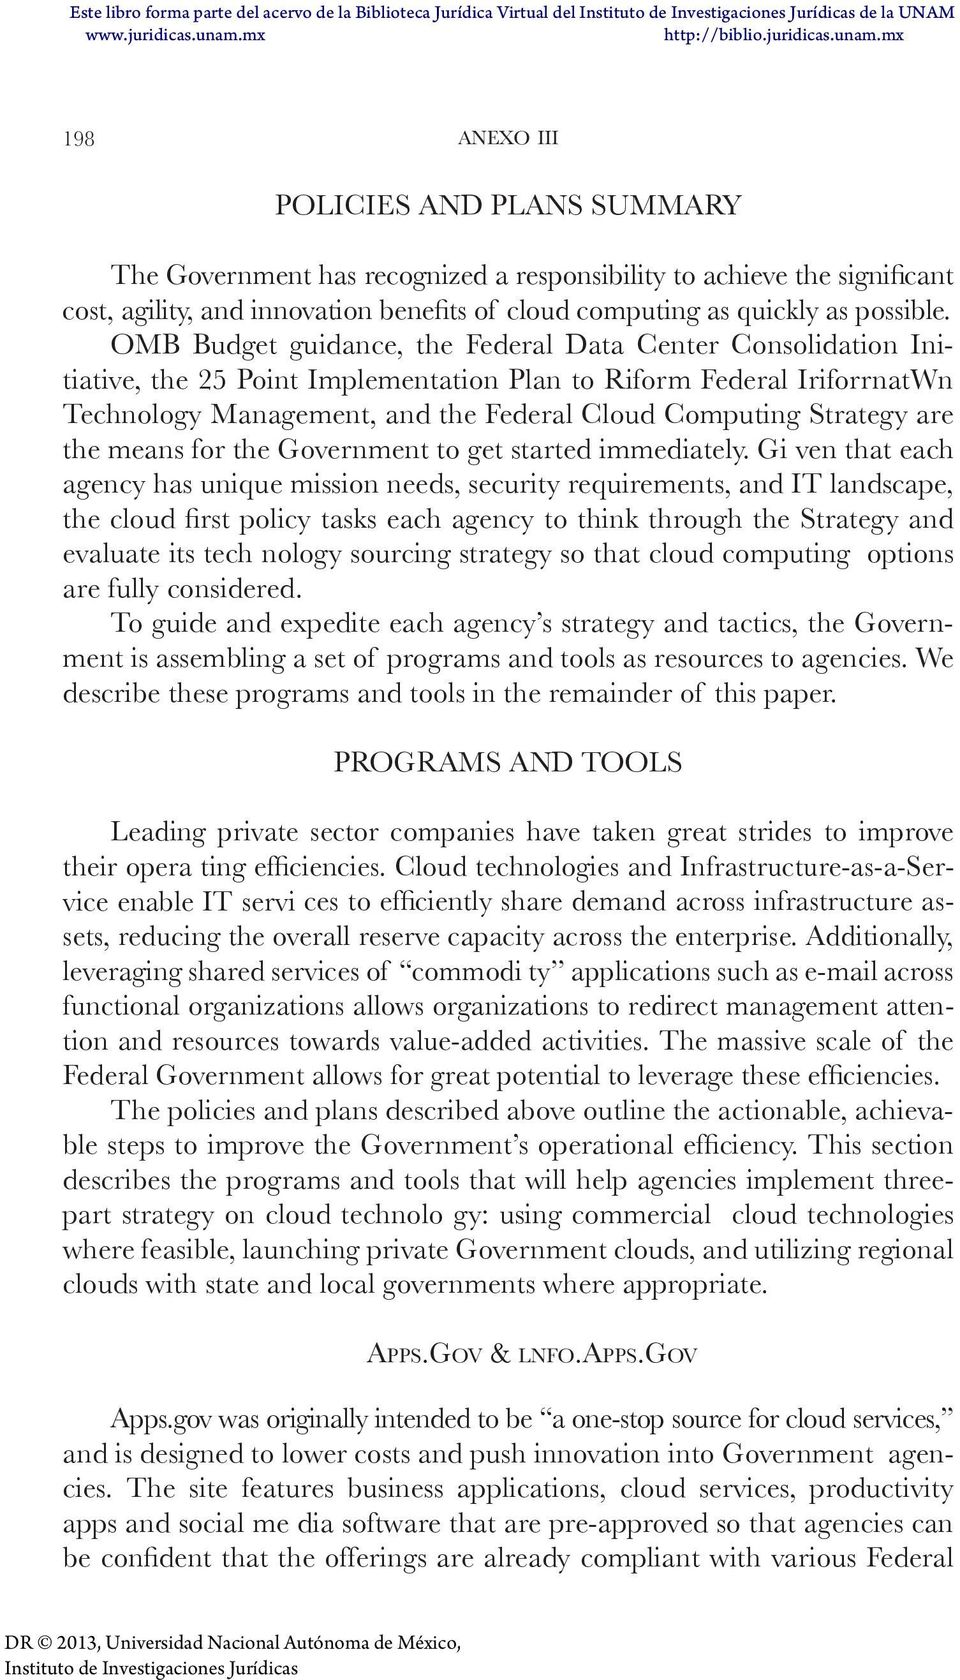 OMB Budget guidance, the Federal Data Center Consolidation Initiative, the 25 Point Implementation Plan to Riform Federal IriforrnatWn Technology Management, and the Federal Cloud Computing Strategy